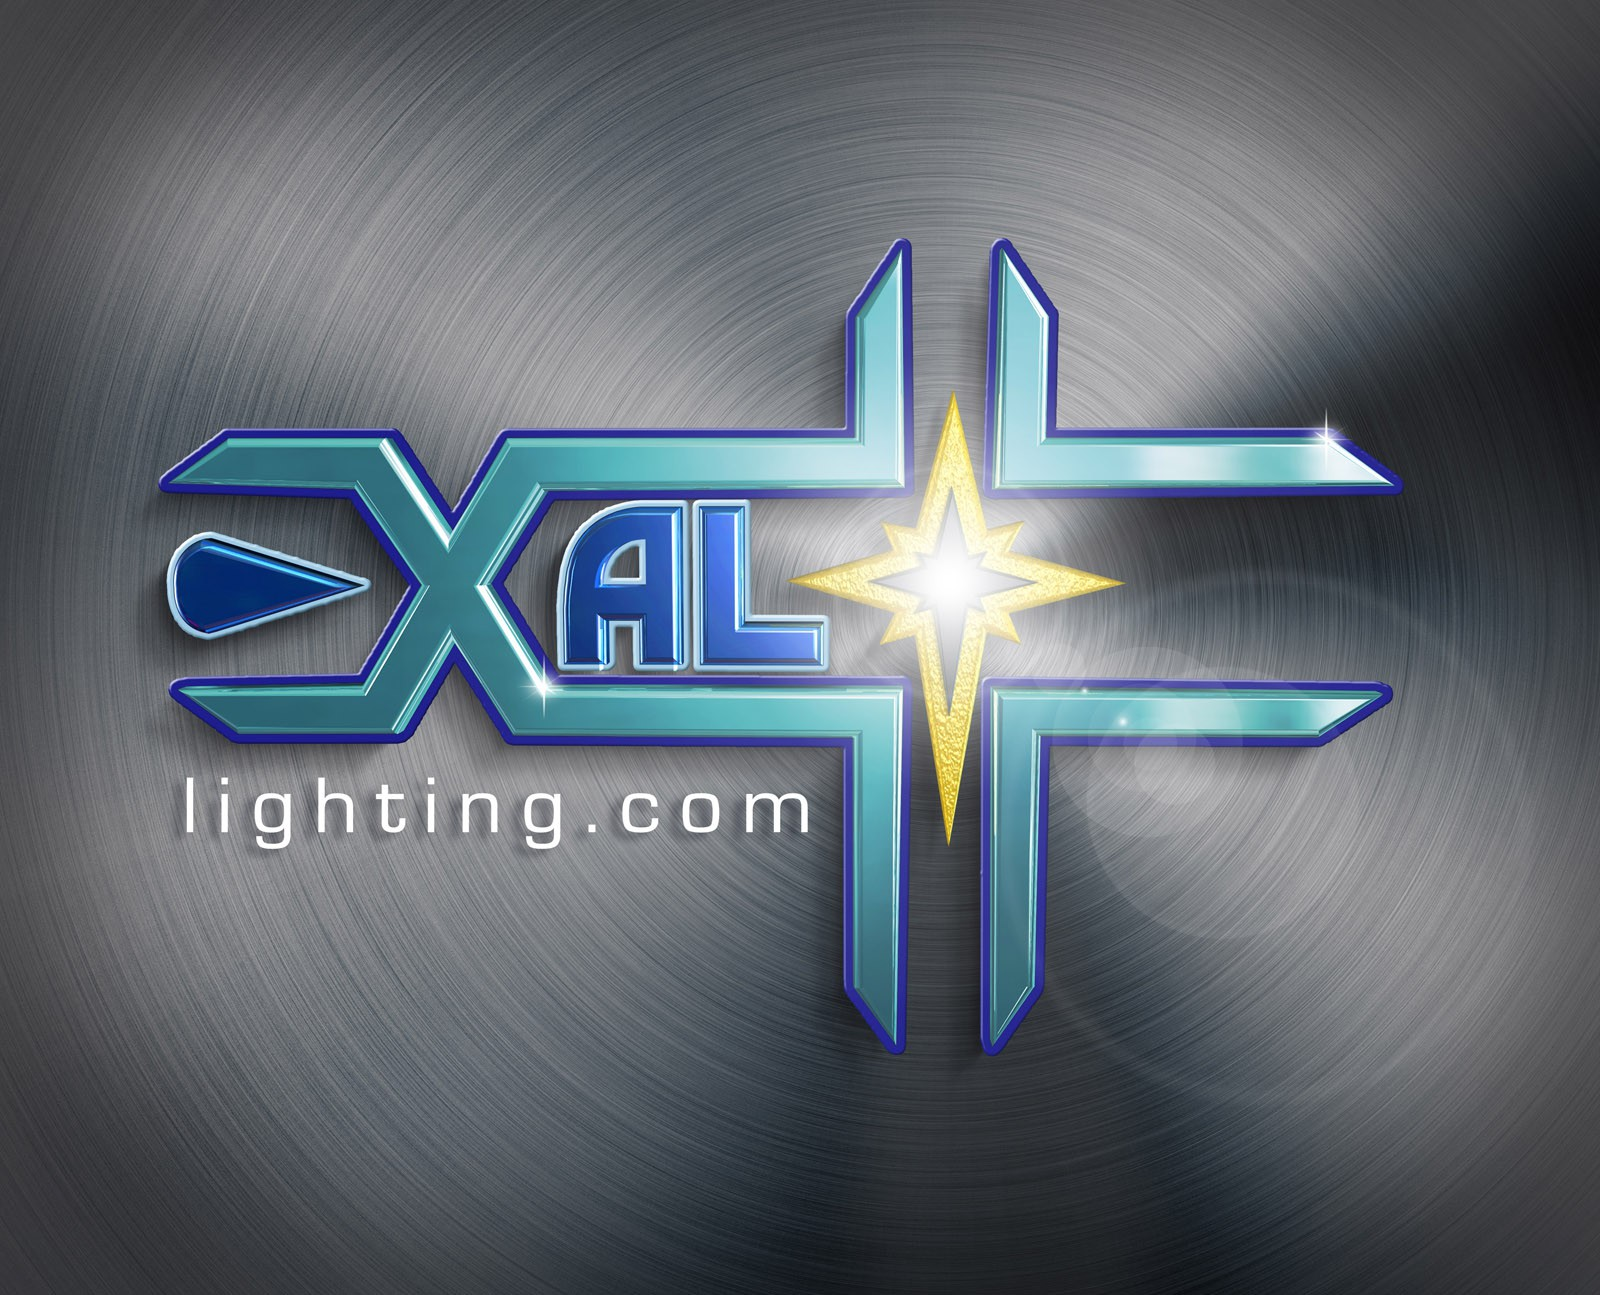 Create the next logo for Exalt lighting